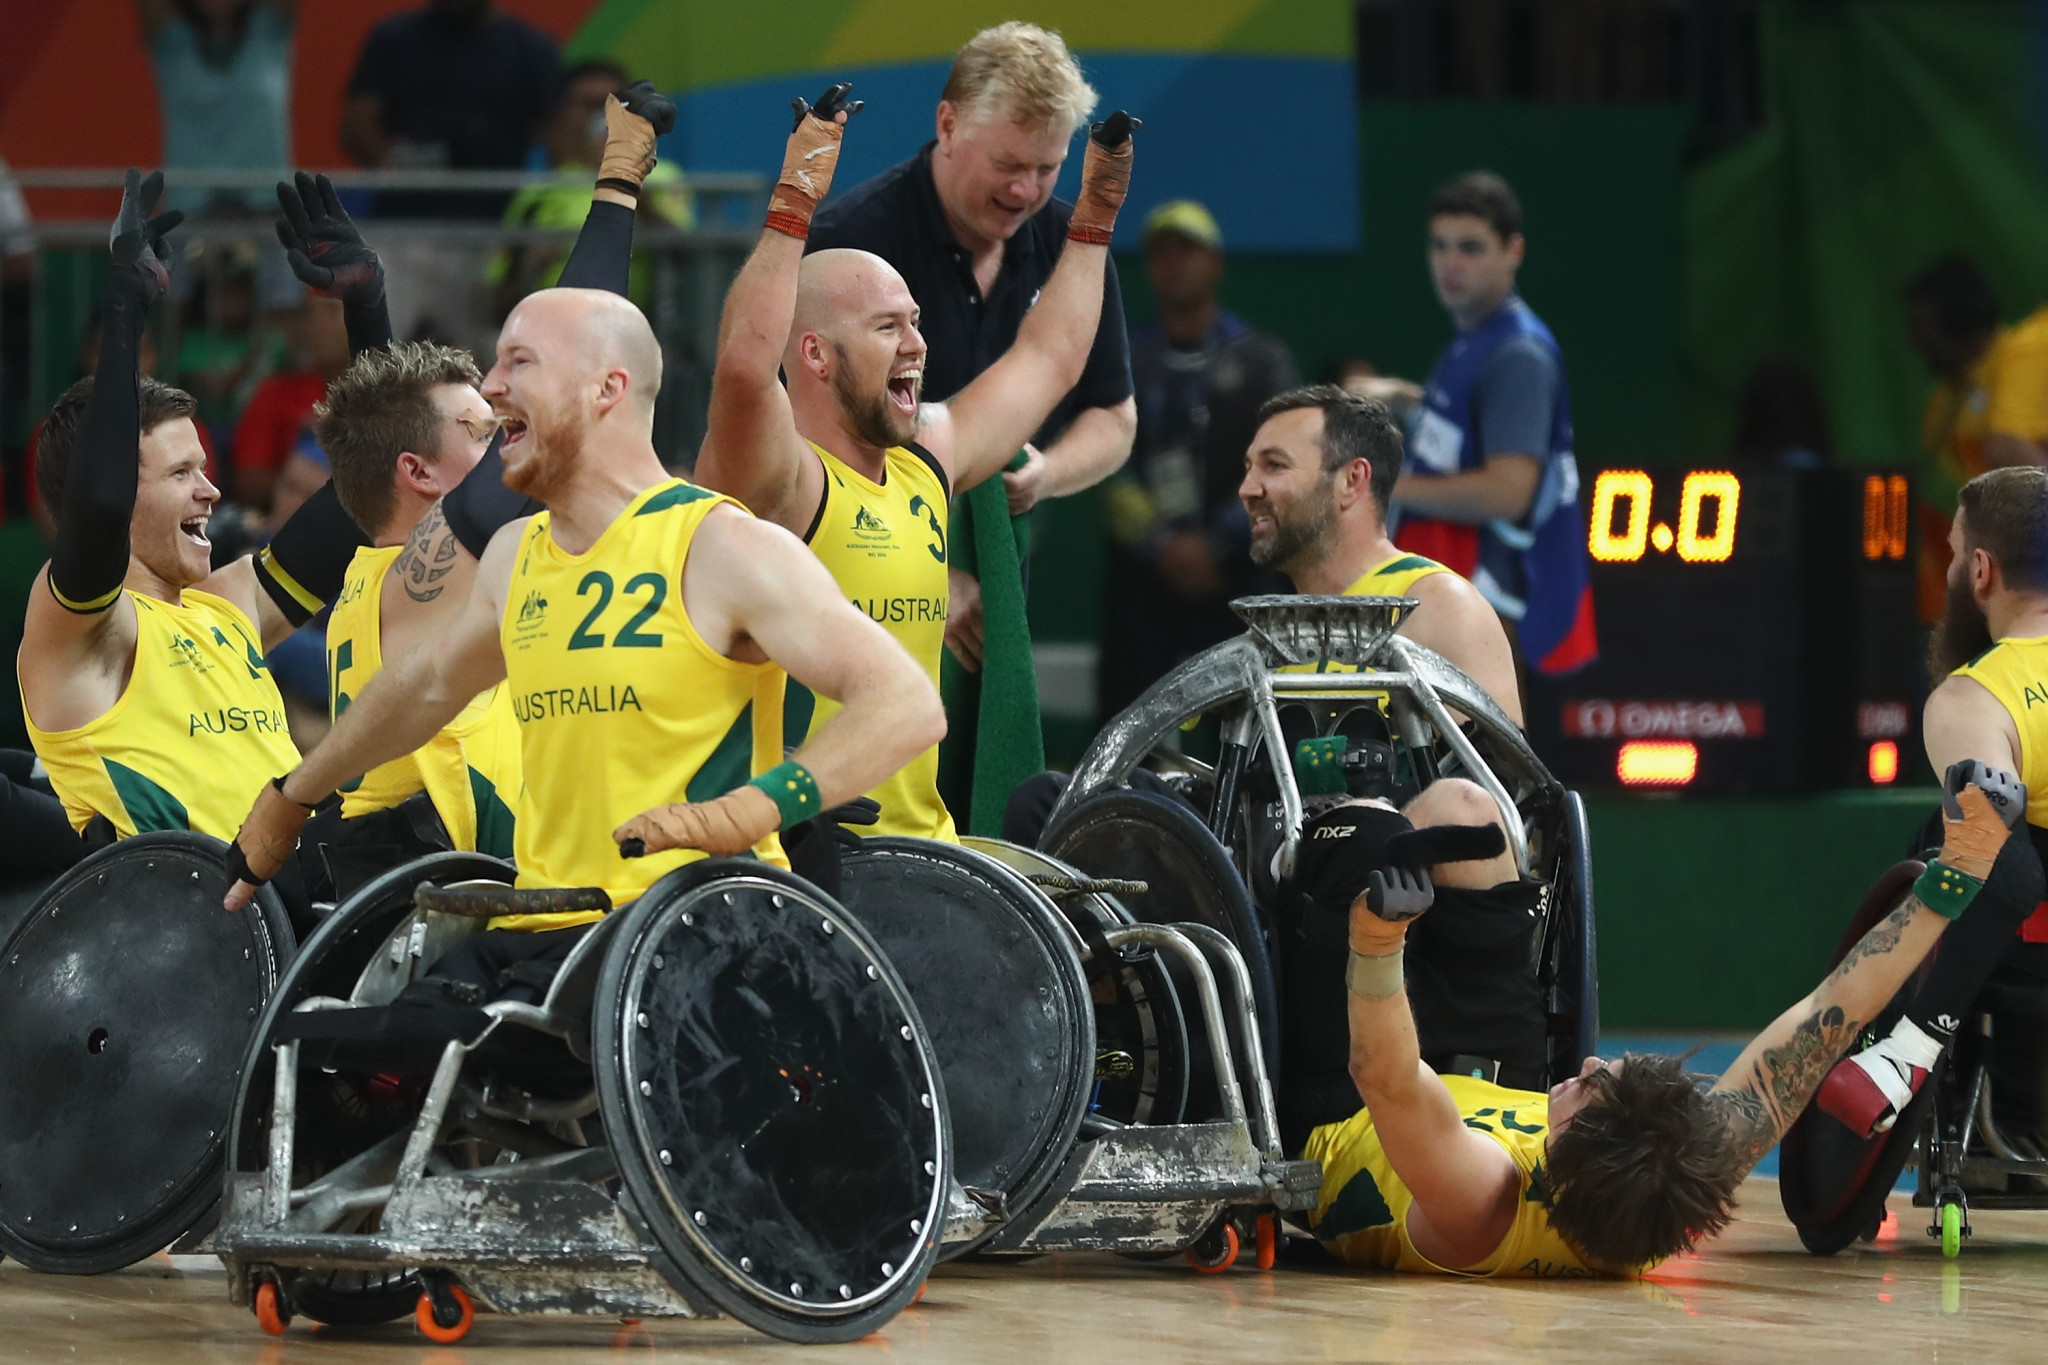 Australia top seedings for IWRF Wheelchair Rugby World Championship